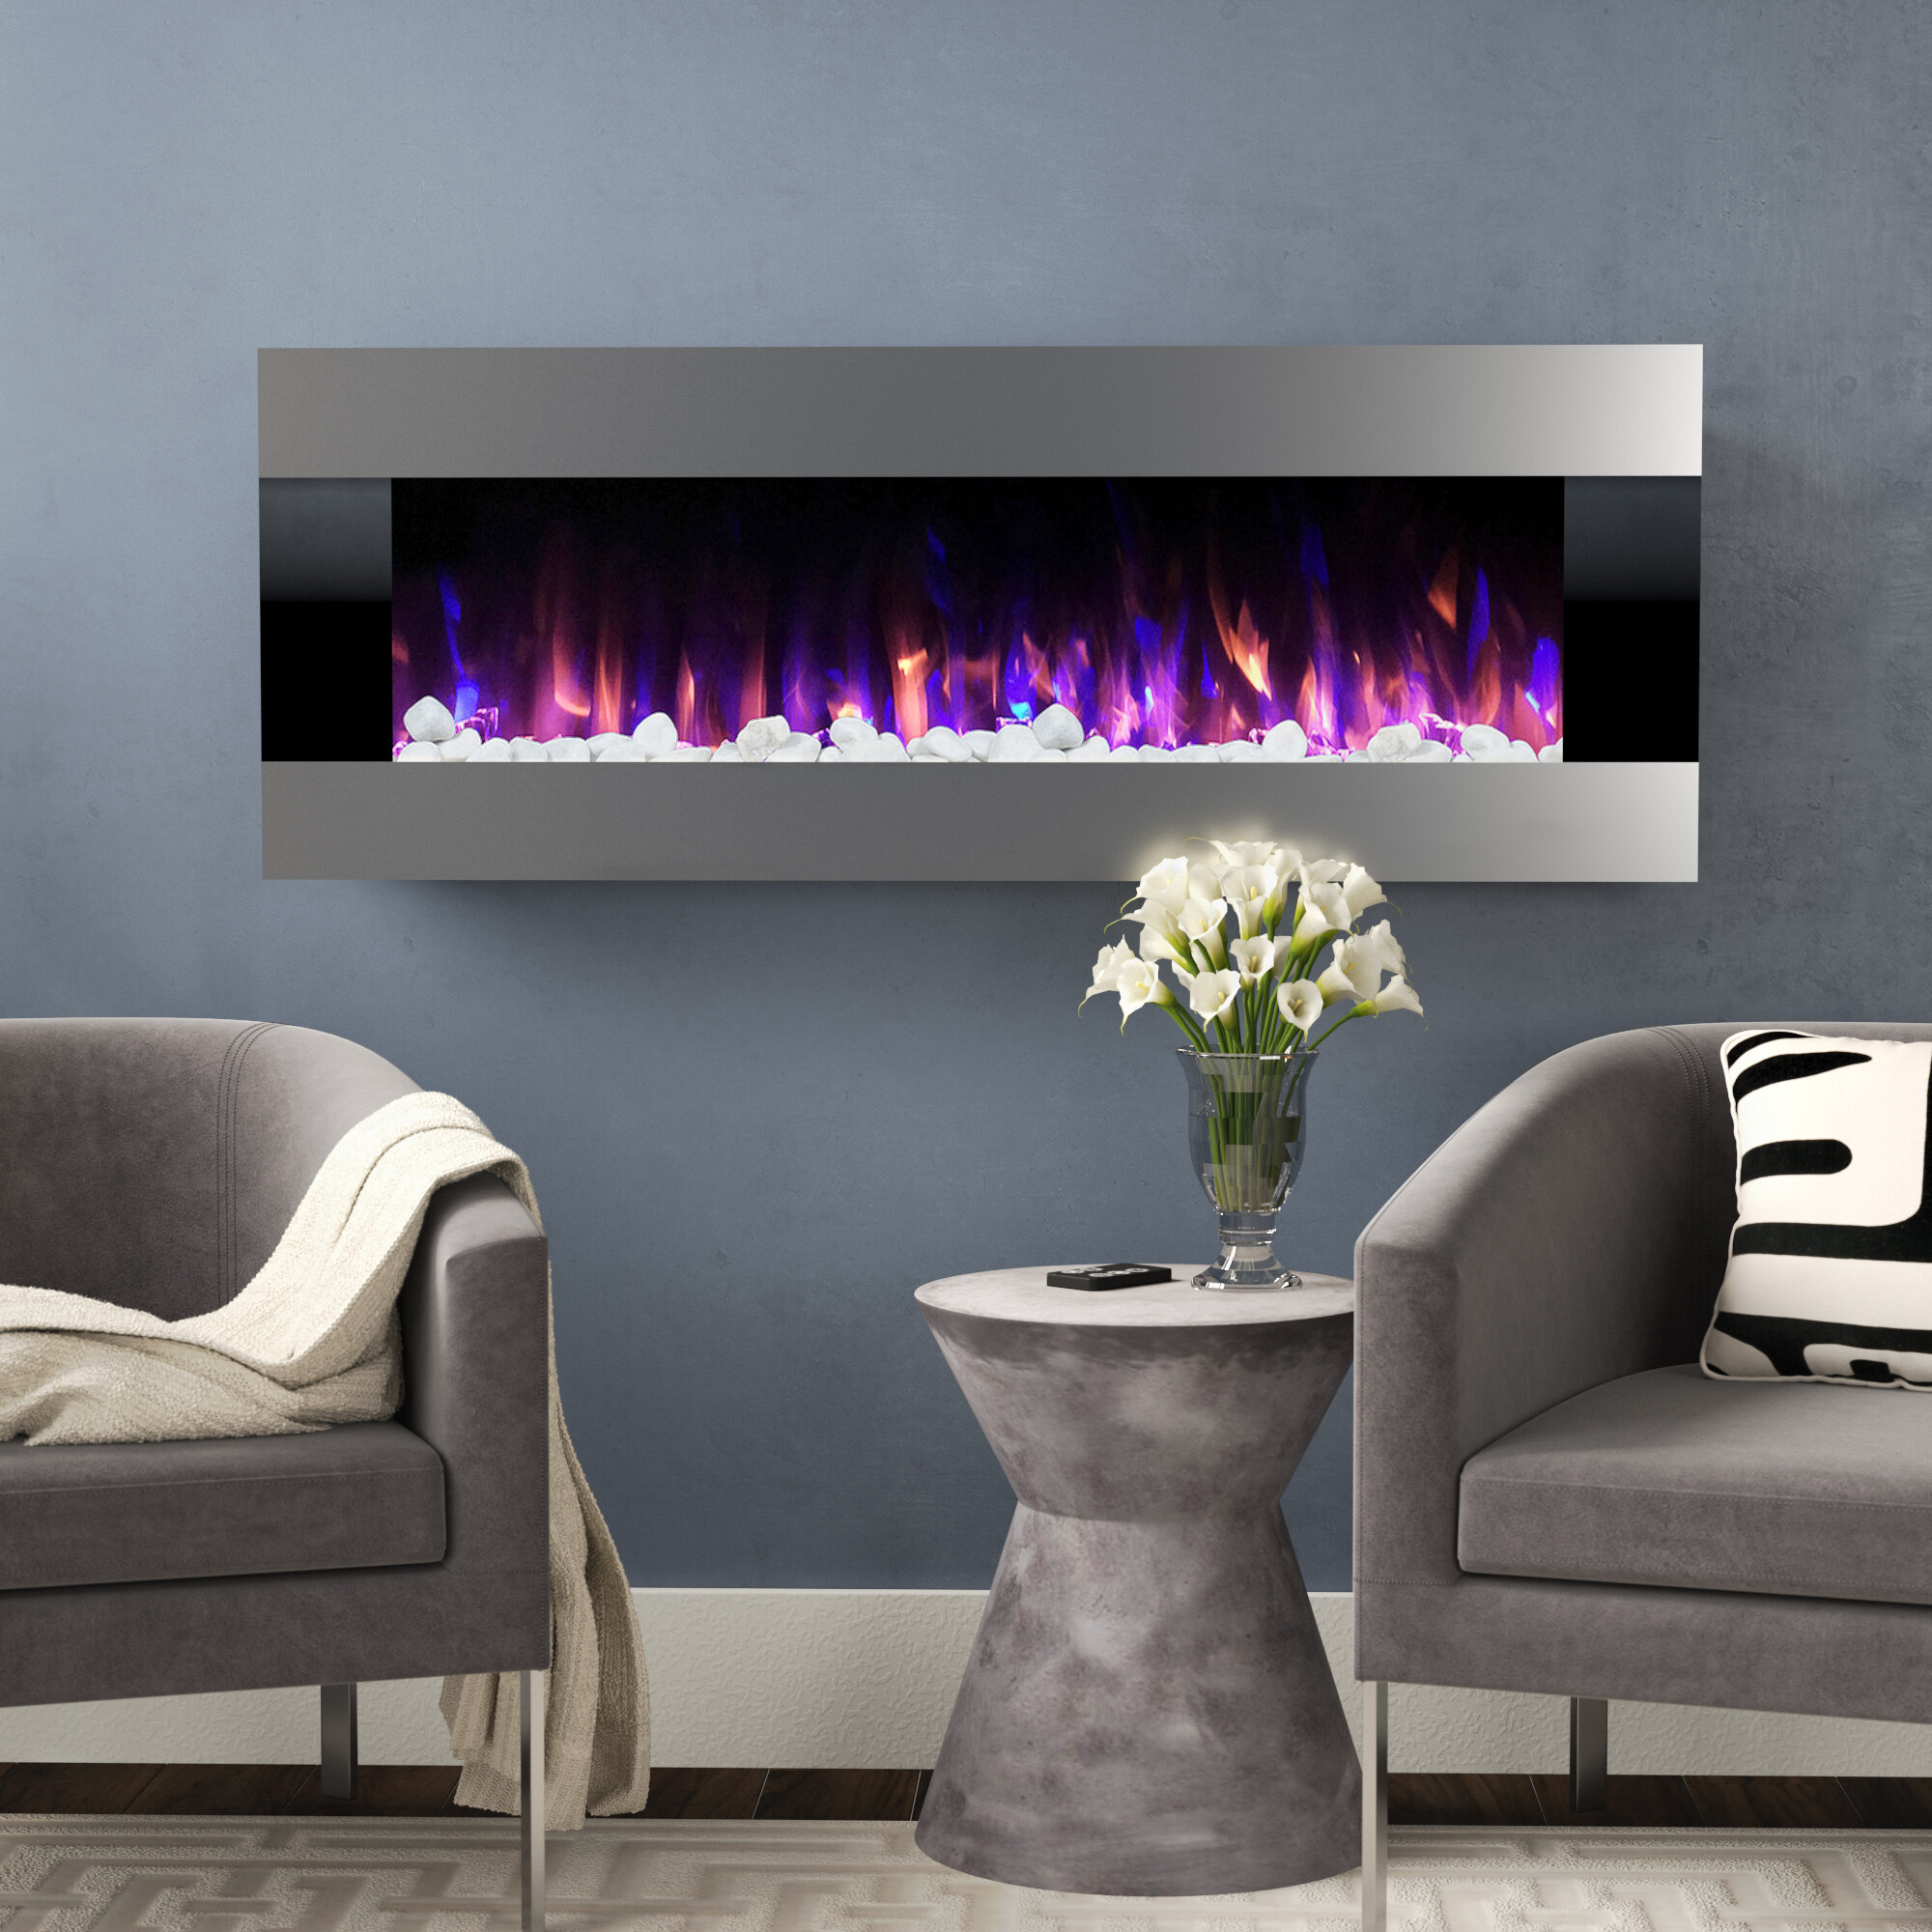 Tremendous Quesinberry Wall Mounted Electric Fireplace Interior Design Ideas Gentotryabchikinfo